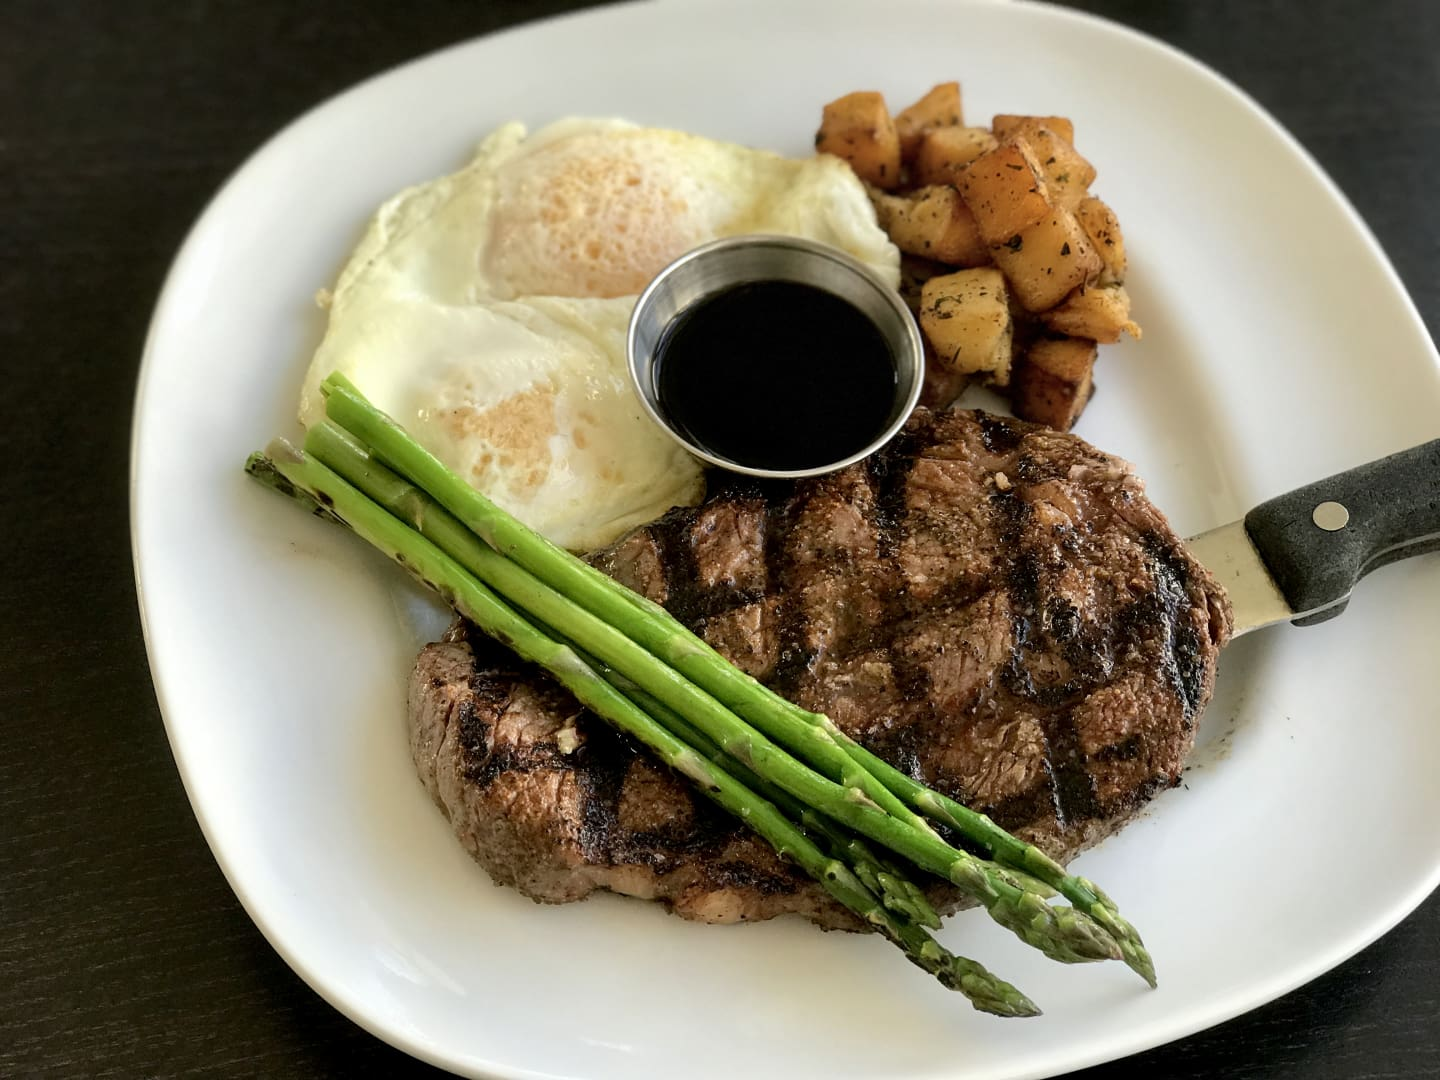 Cowboy Rib Eye Steak and Eggs w/ 2 Eggs Any Style, Grilled Asparagus, Red Potatoes & Worcestershire Sauce